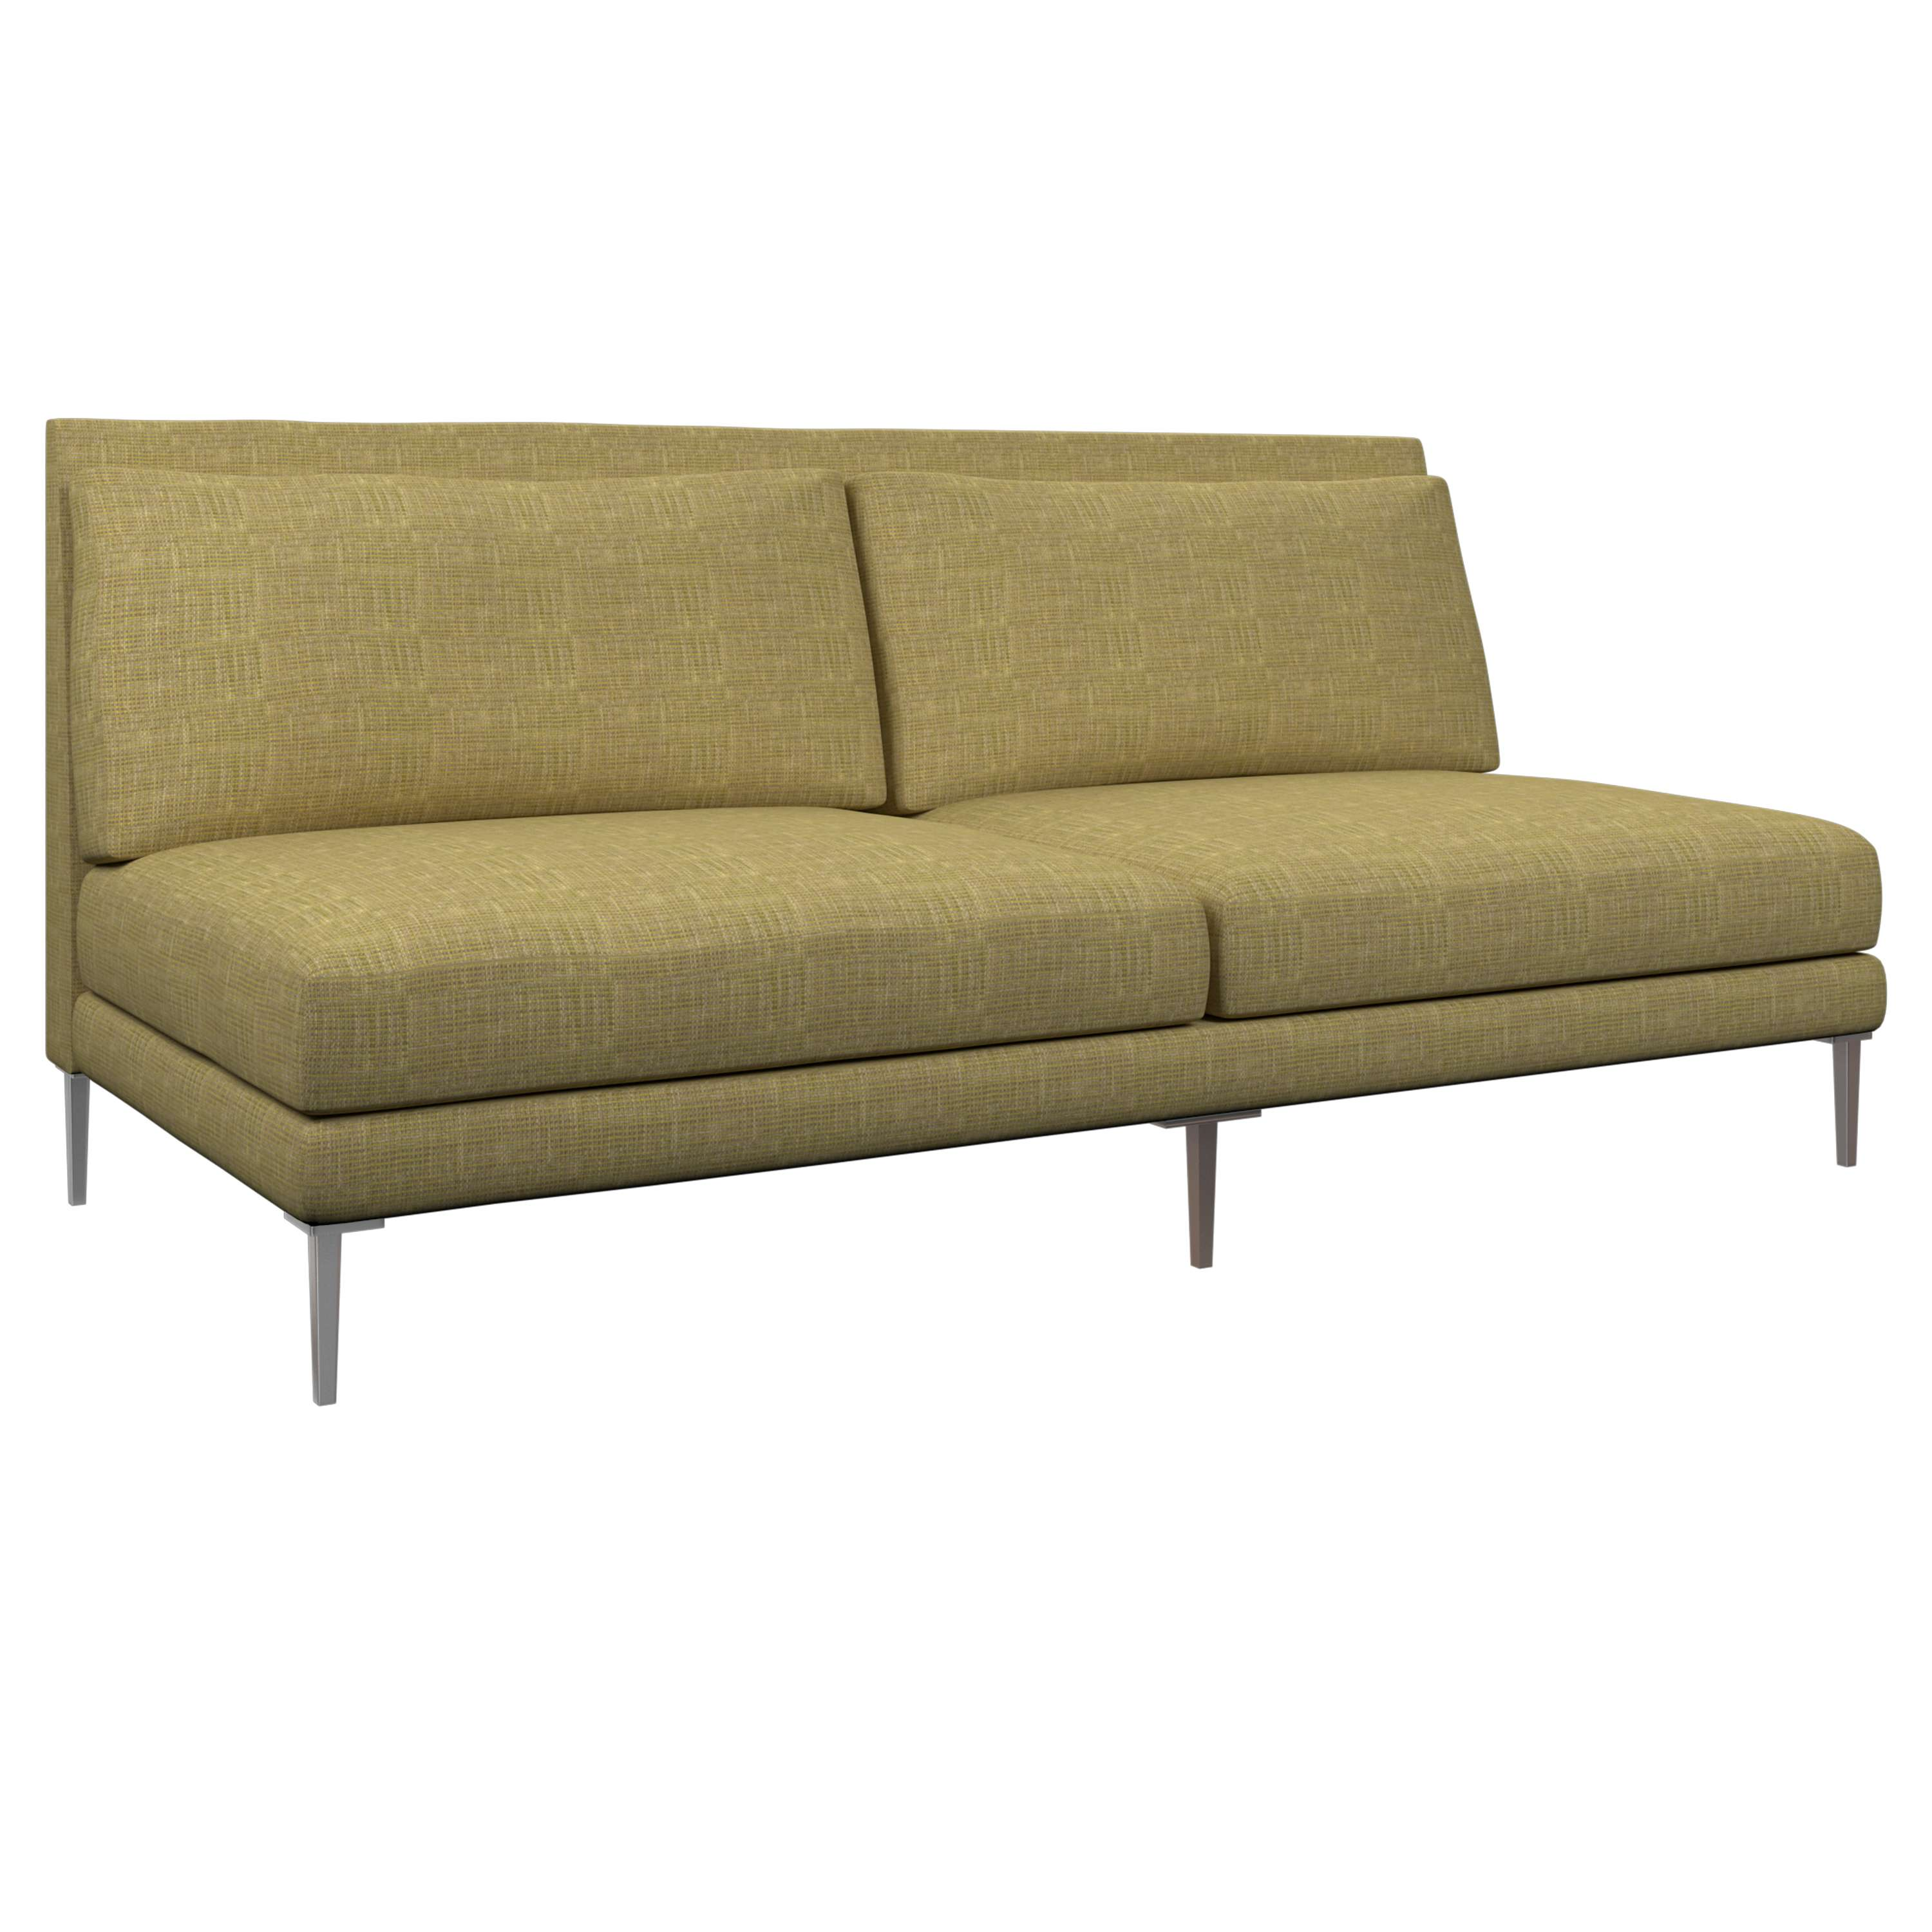 Sofa Outlet Cheshire Heritage Chartreuse Portola Sofa Furniture